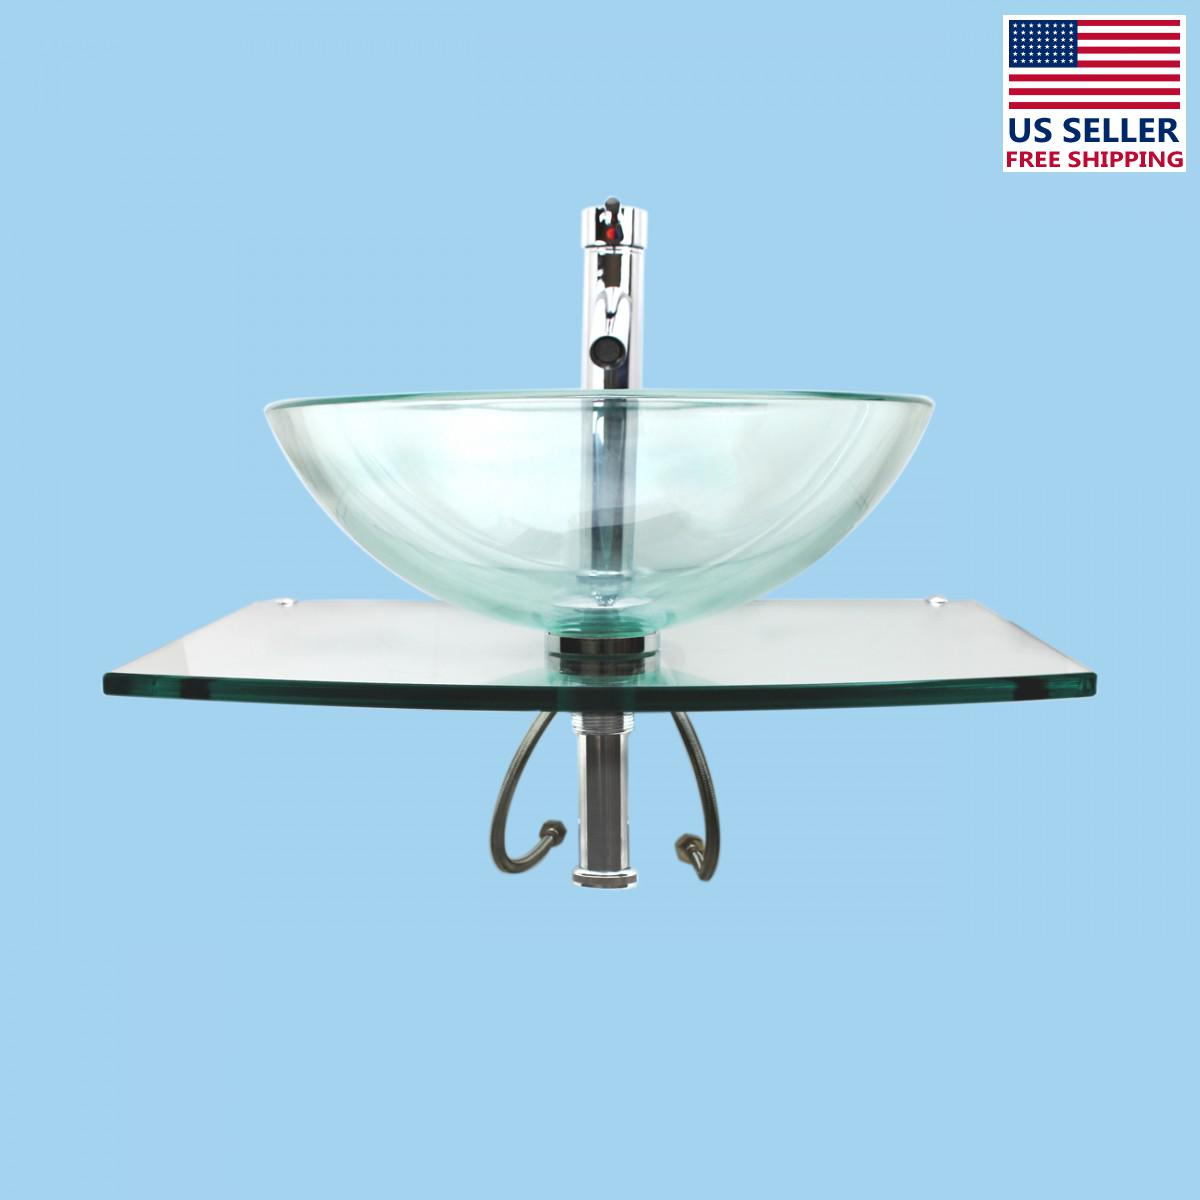 Unique Tempered Glass Wall Mount Vessel Sink Clear Durable Renovator ...